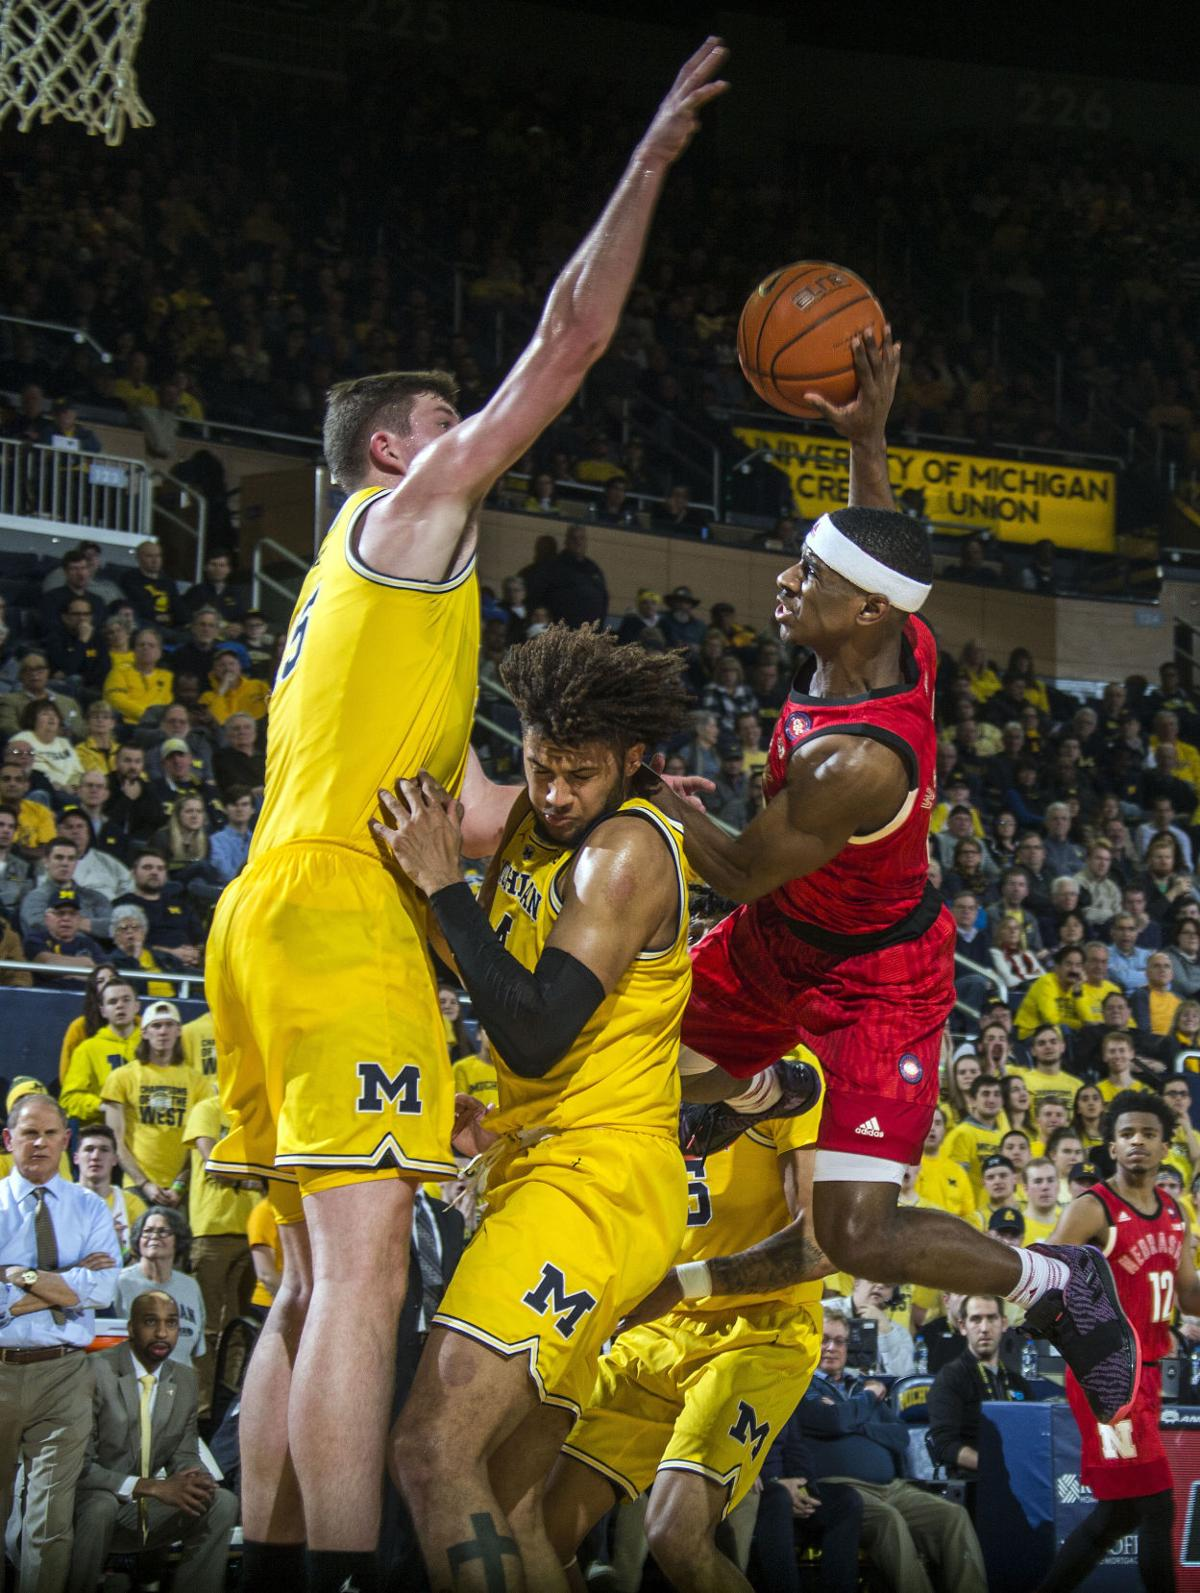 Nebraska Michigan Basketball